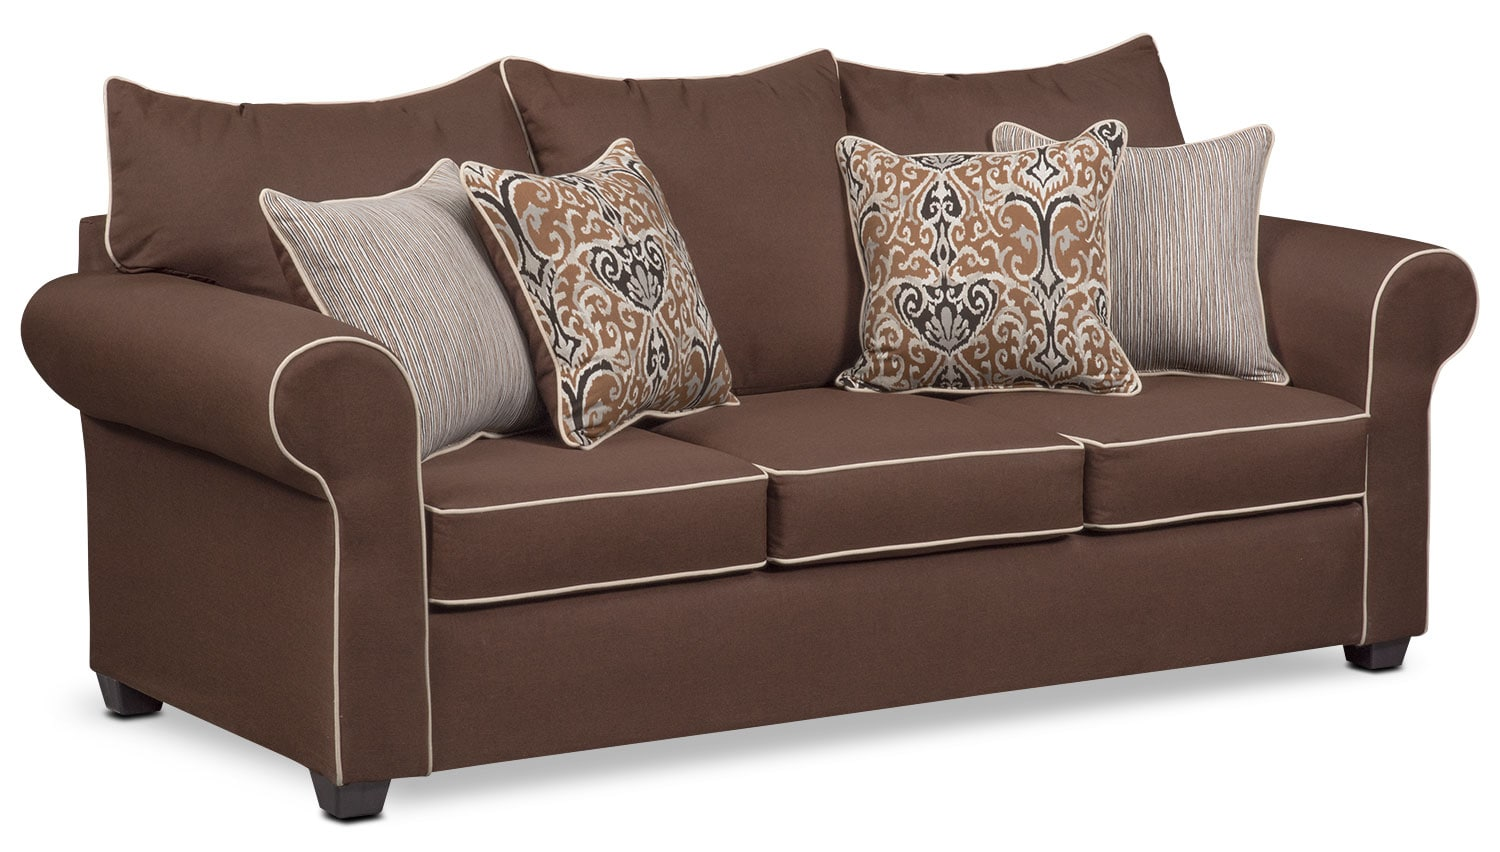 Carla Sofa - Chocolate